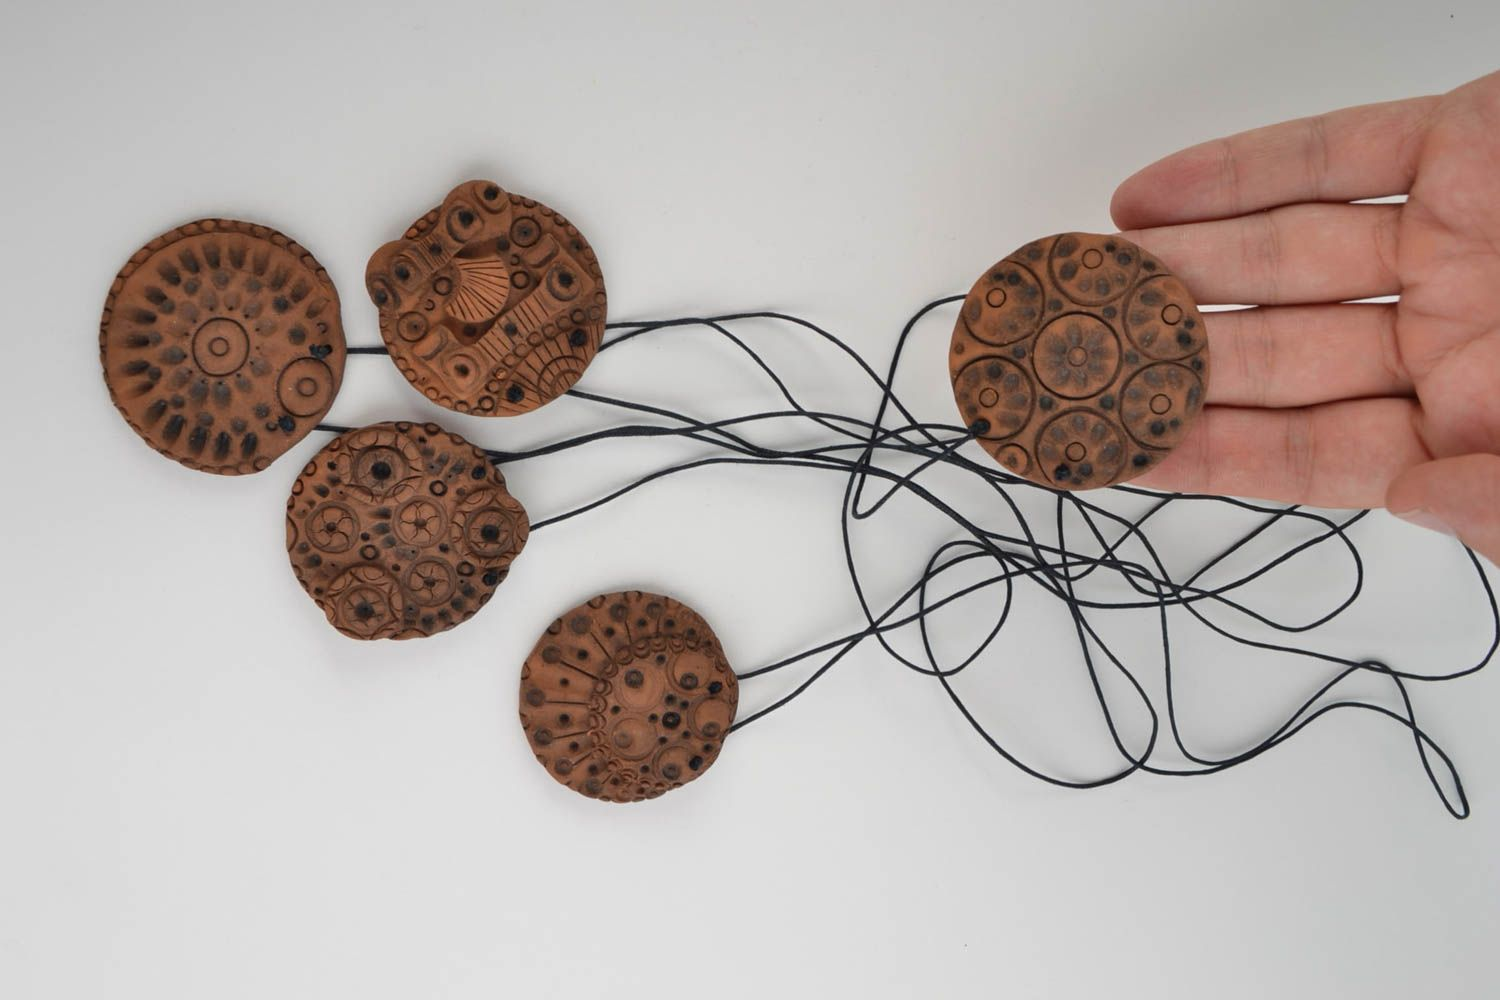 Set of handmade stylish clay pendants of round shape in ethnic style 5 pieces photo 5